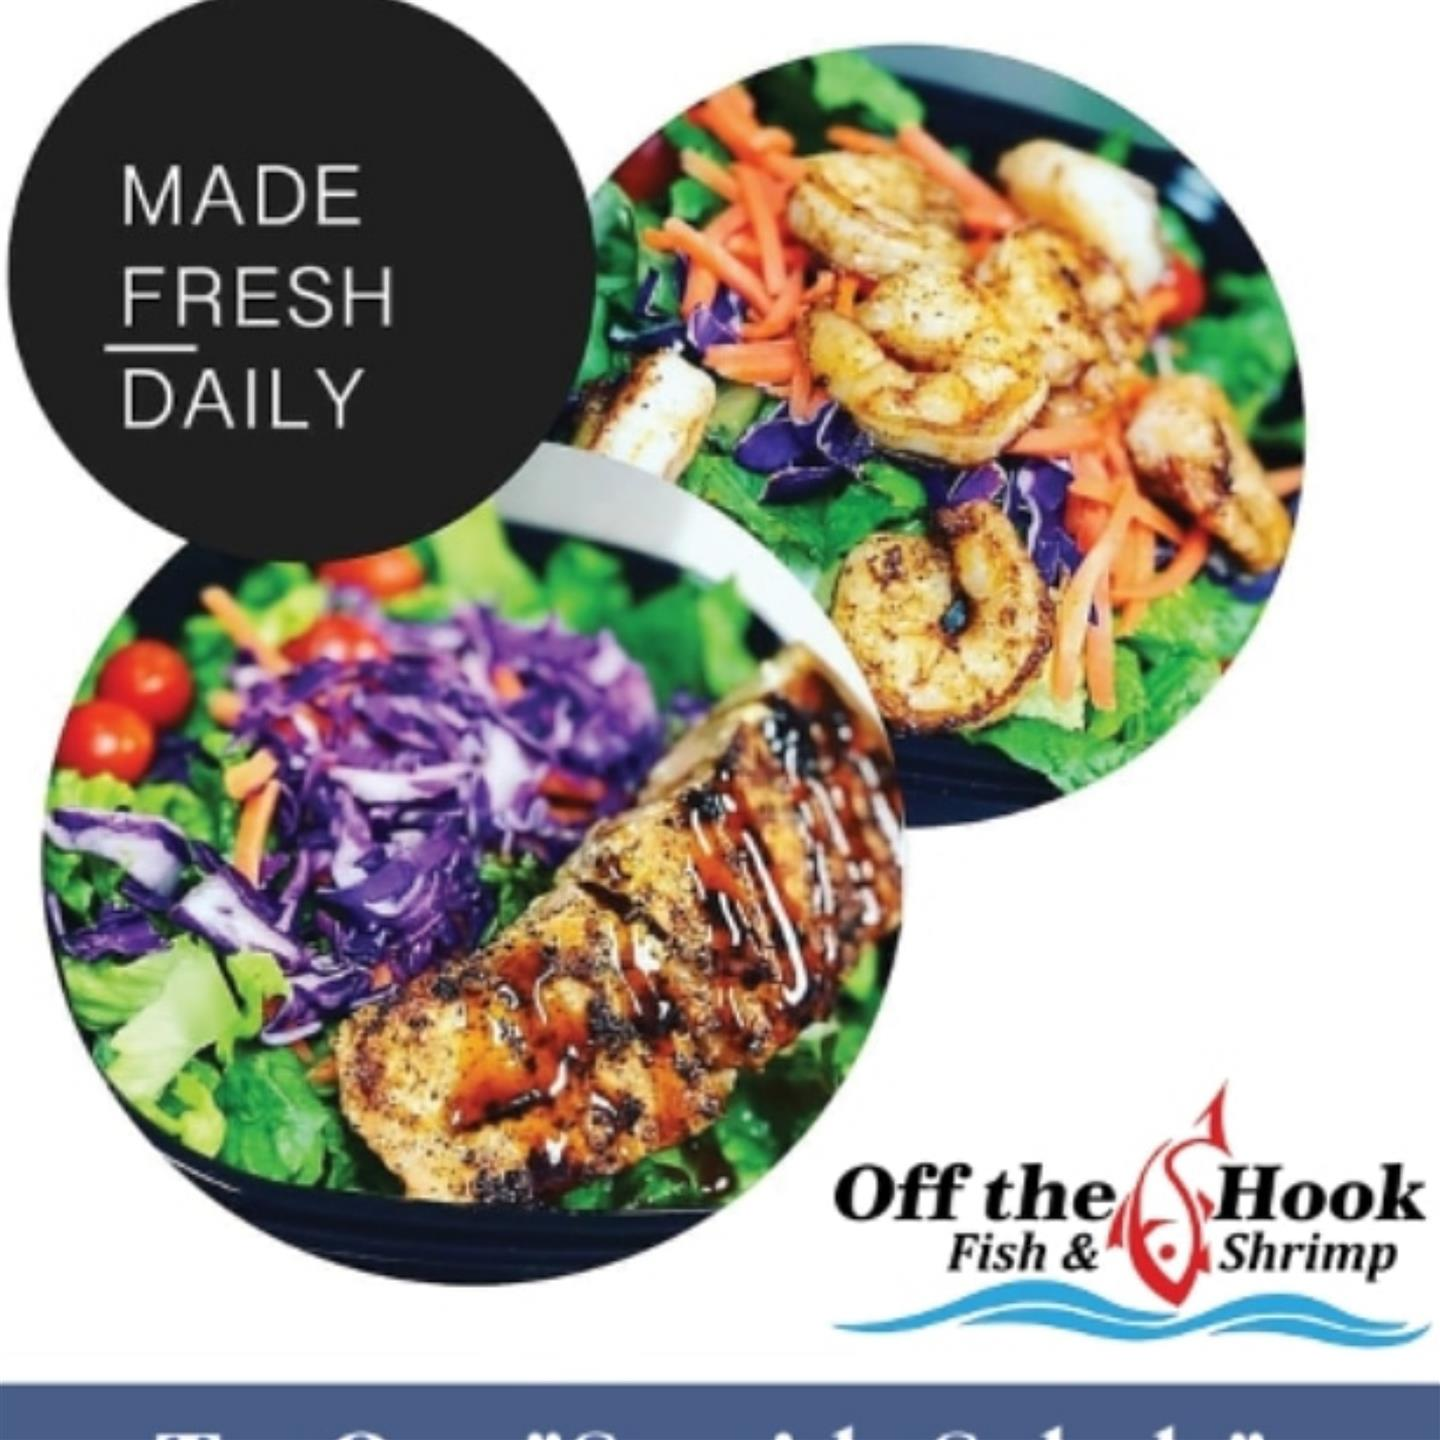 Off the hook made fresh daily with two salads and their logo